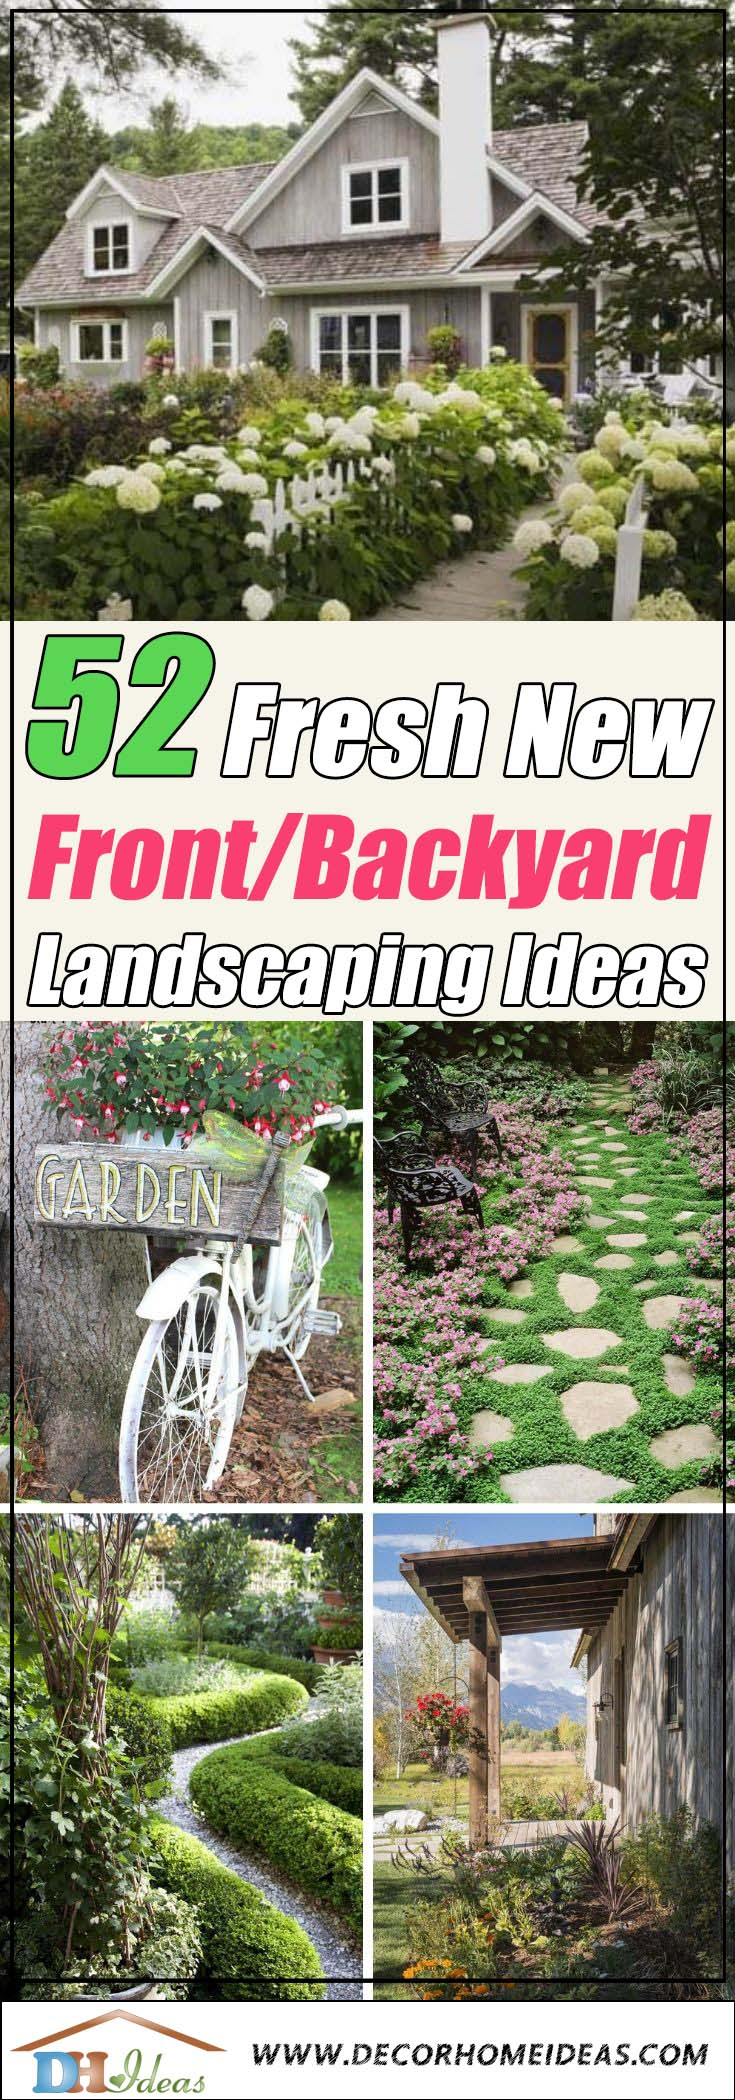 Fresh New Front Yard and Backyard Landscaping Ideas and Designs #garden #landscaping #decorhomeideas